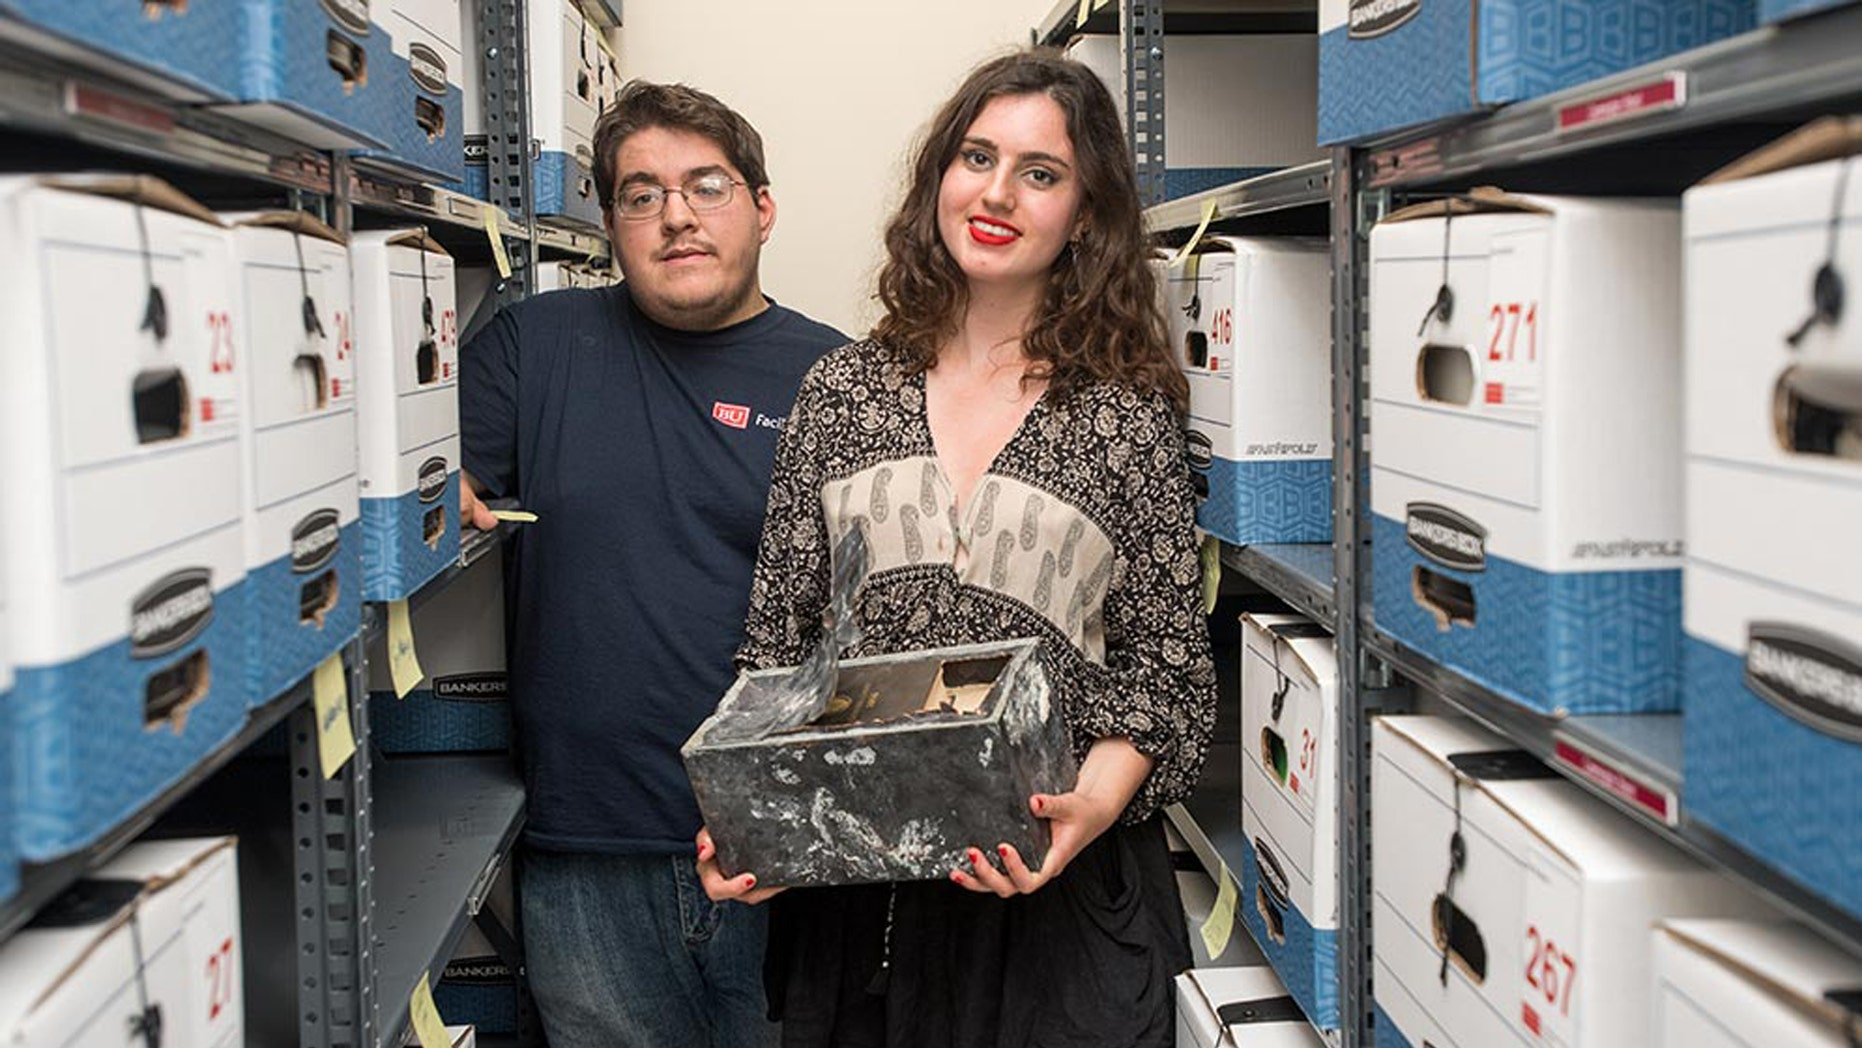 Adam Mumford (CAS'18) and Emma Purtell (CGS'17, COM'19) with the time capsule found in one of the hundreds of boxes of files they were archiving for BU's Facilities Management & Planning. Photo by Cydney Scott